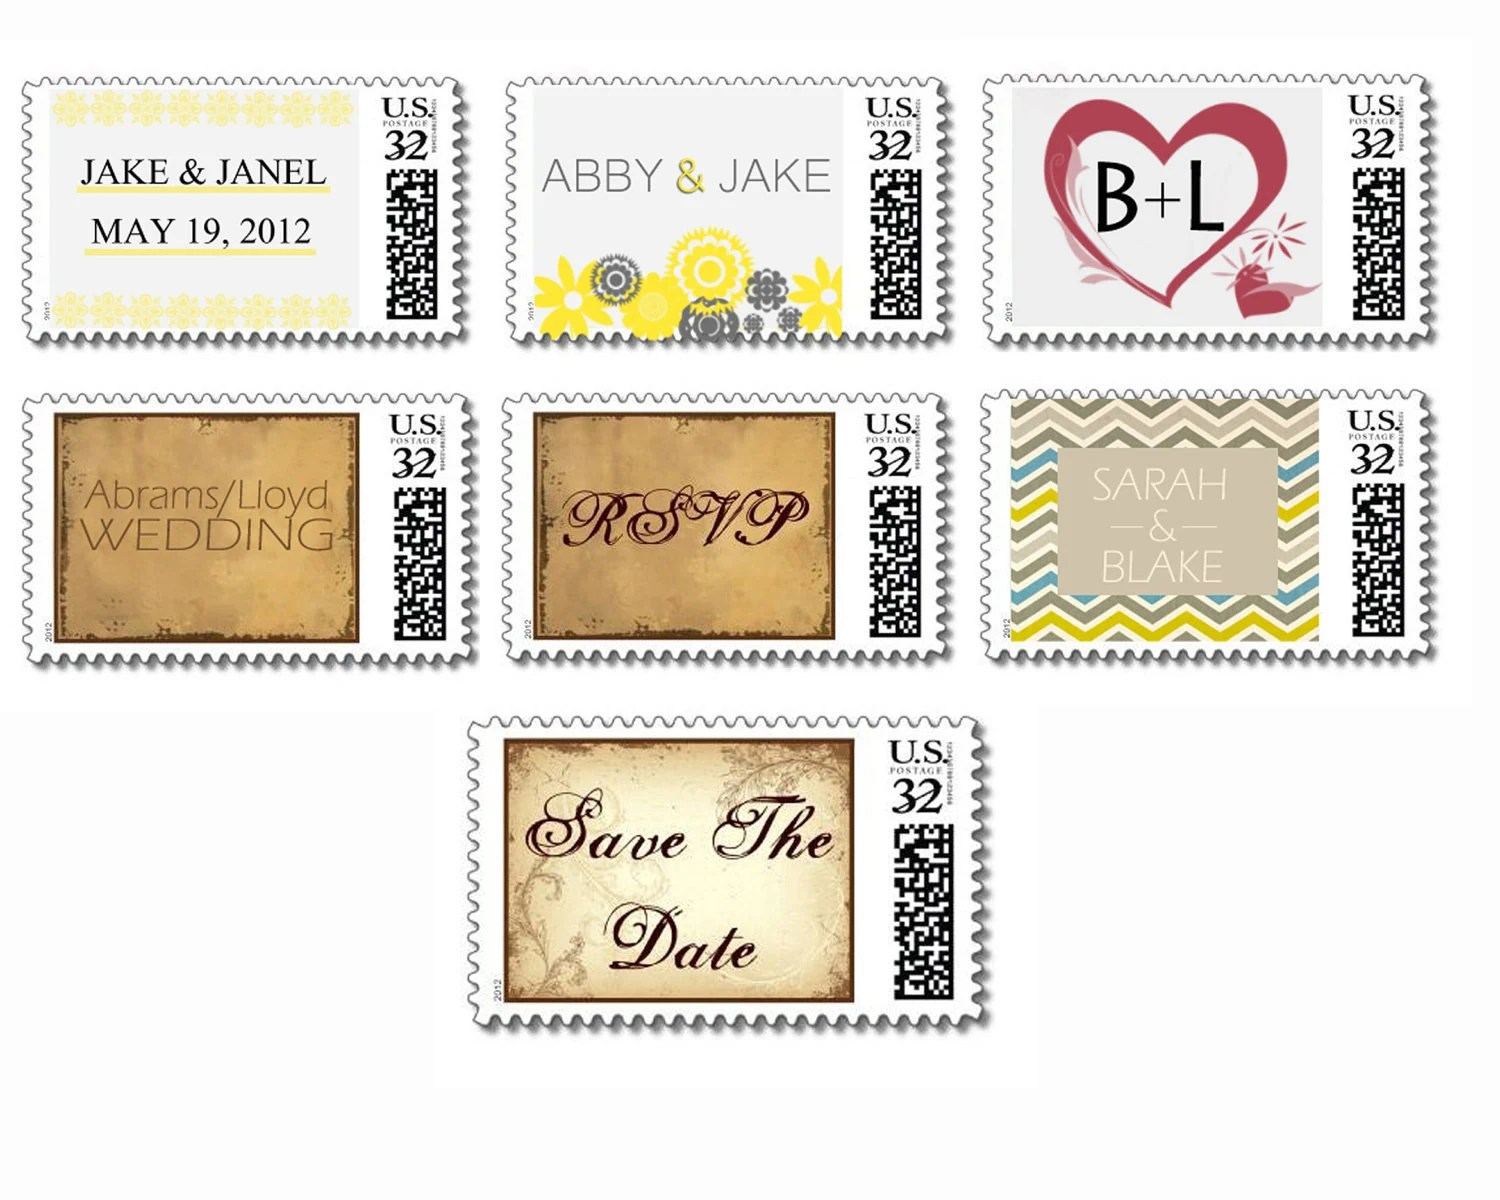 custom postage stamps for wedding invitations wedding invitation stamps Custom Postage Stamps For Wedding Invitations